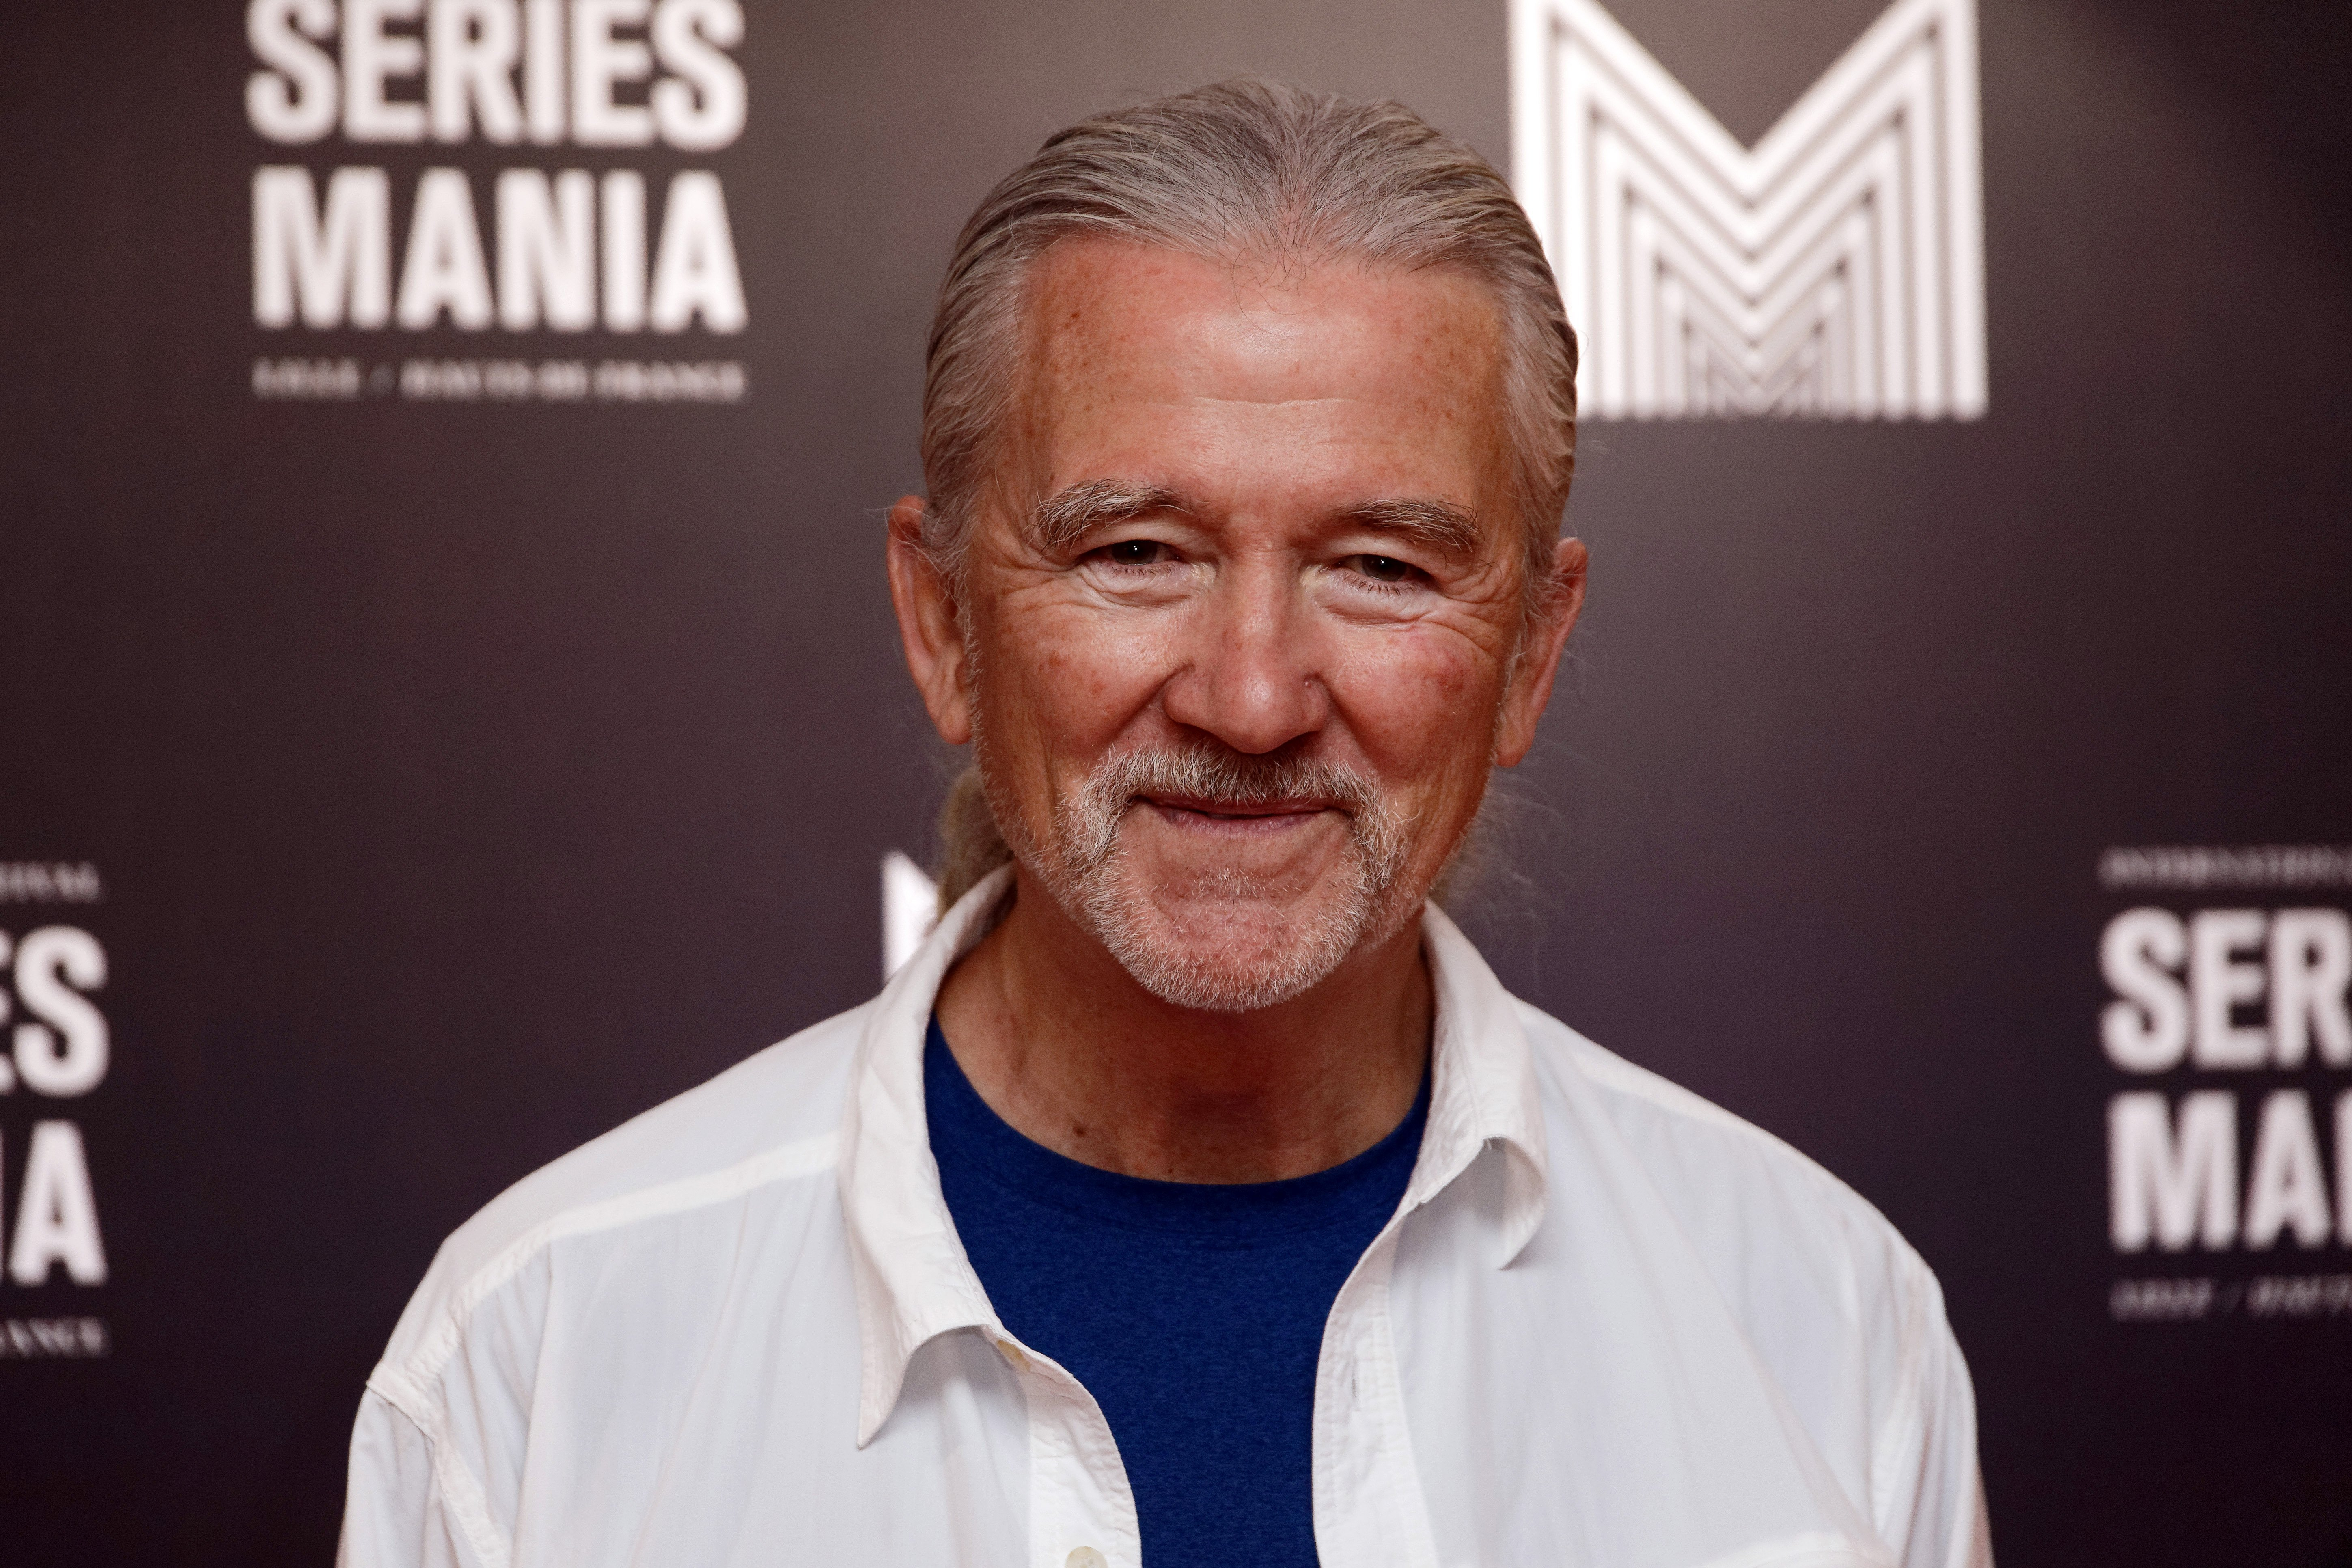 Patrick Duffy attends photocall as part of Series Mania Lille Hauts de France festival on May 2, 2018. | Photo: GettyImages